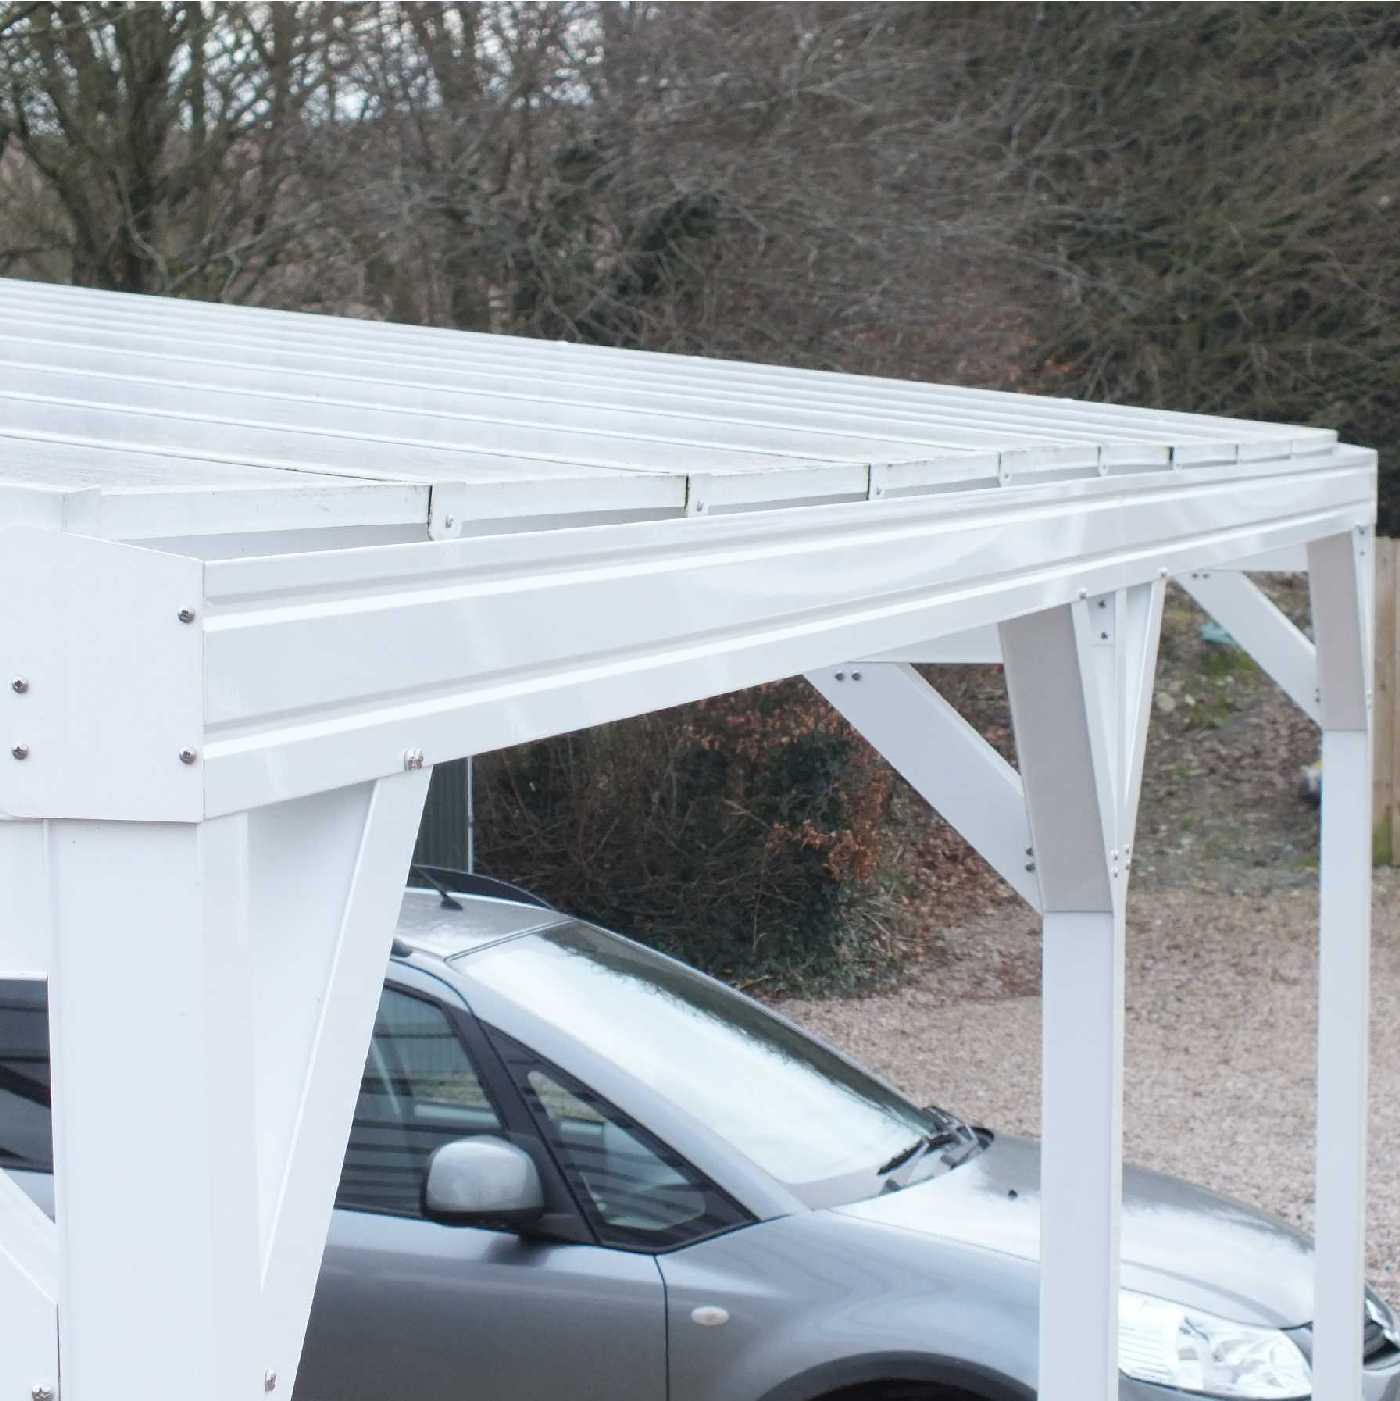 Omega Smart Free-Standing, MonoPitch Roof Canopy with 16mm Polycarbonate Glazing - 7.0m (W) x 4.0m (P), (8) Supporting Posts from Omega Build